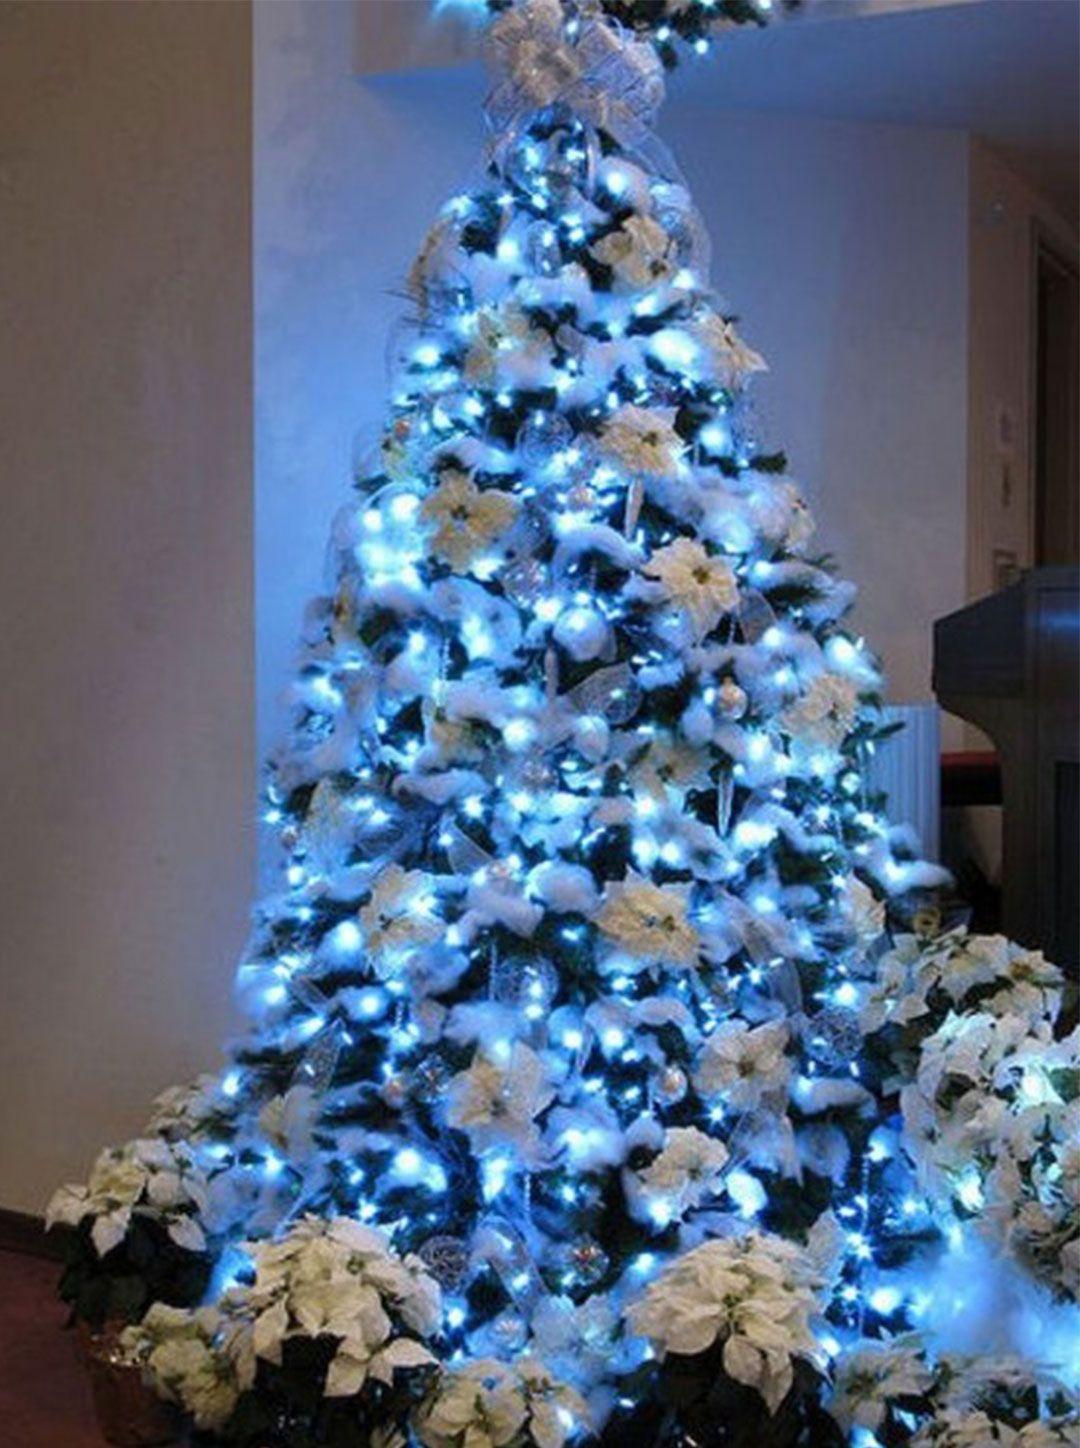 Blue christmas trees decorating ideas - Blue Christmas Tree Decorations 2015wwwmarmaristurizmorg Www 715kvzgn